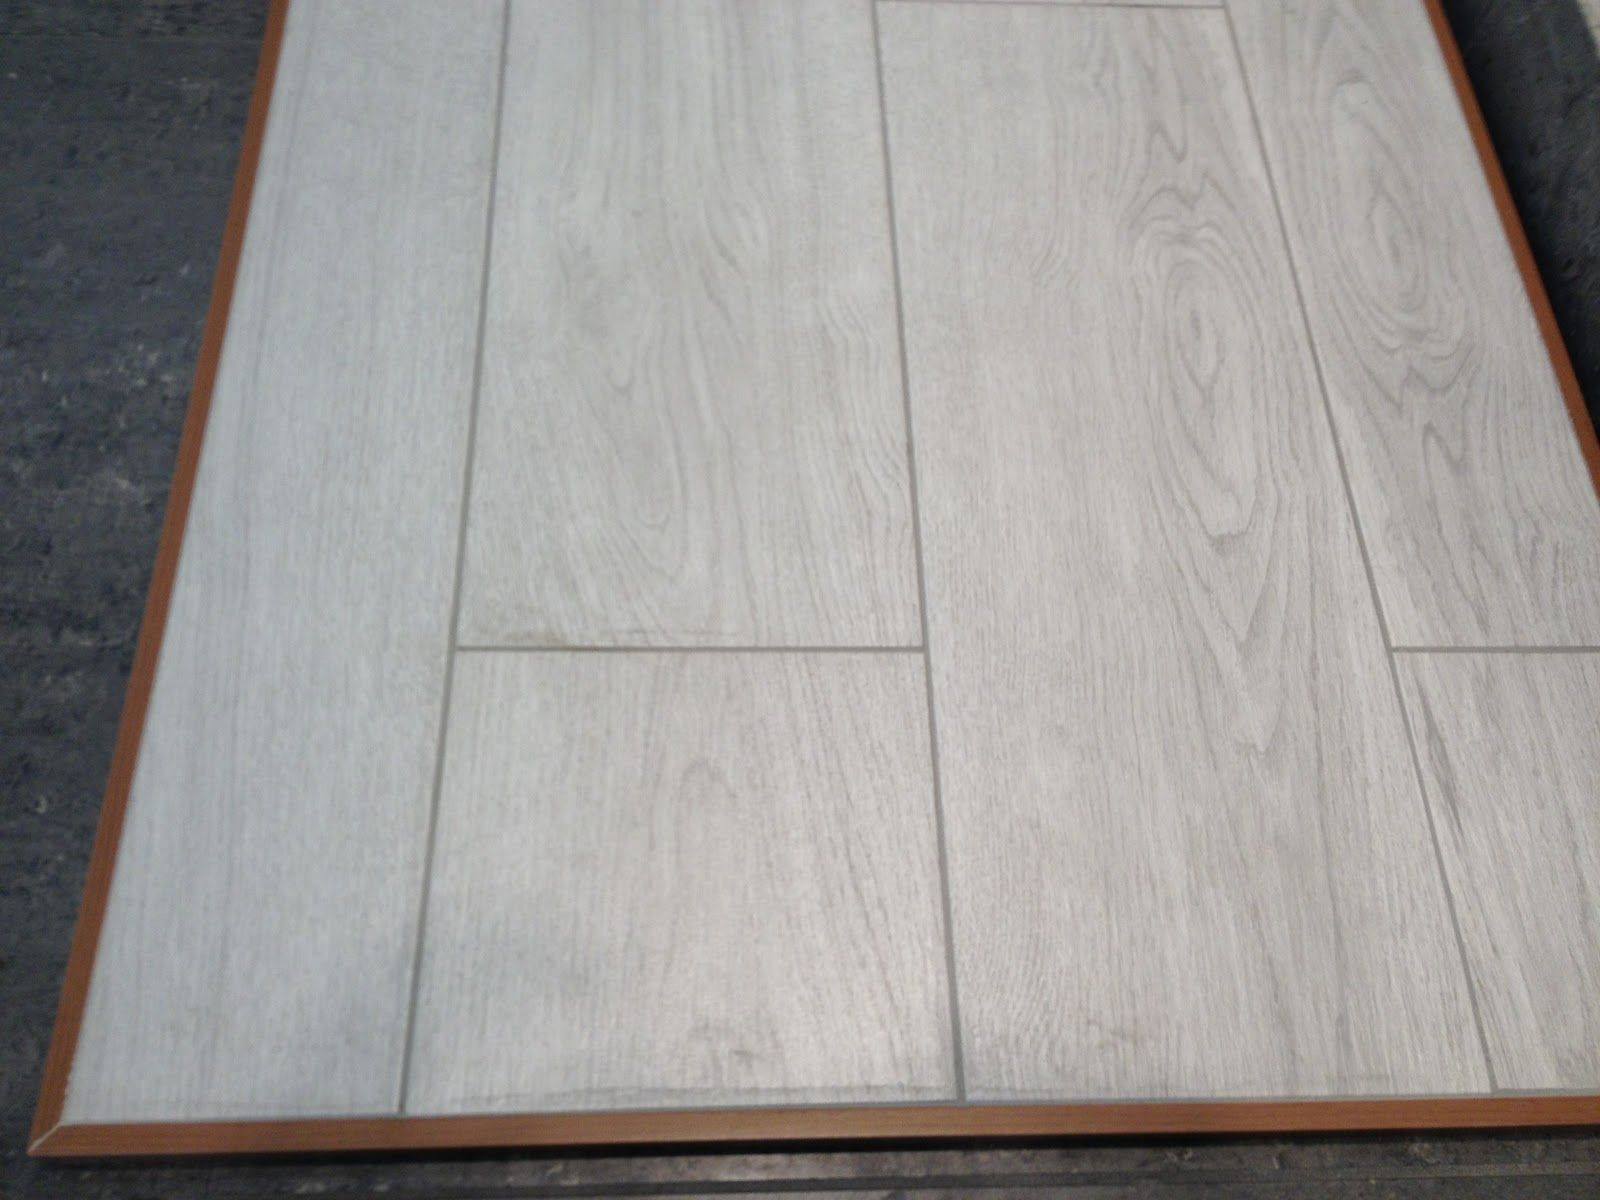 White wash wood looking tile flooring my garden diaries april decoration ideas exciting white natural wood look tile flooring for bathroom floor or oudoor room deck elegant wood look tile inspiration pictures dailygadgetfo Image collections